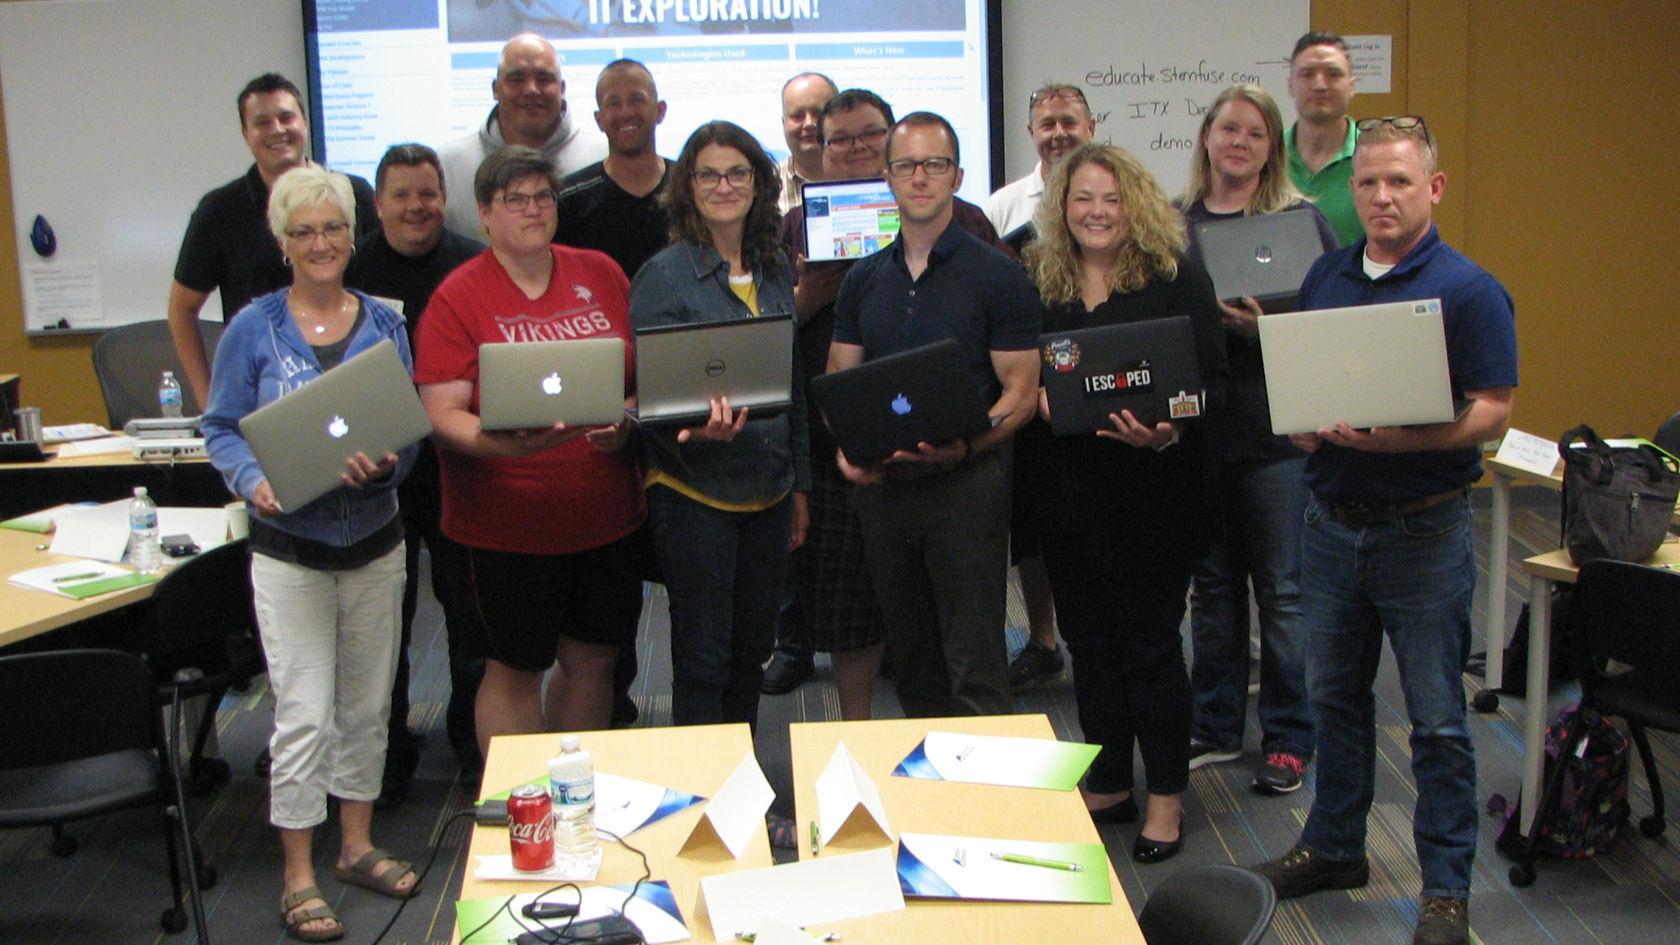 IT Exploration Rocks…More than Ever!